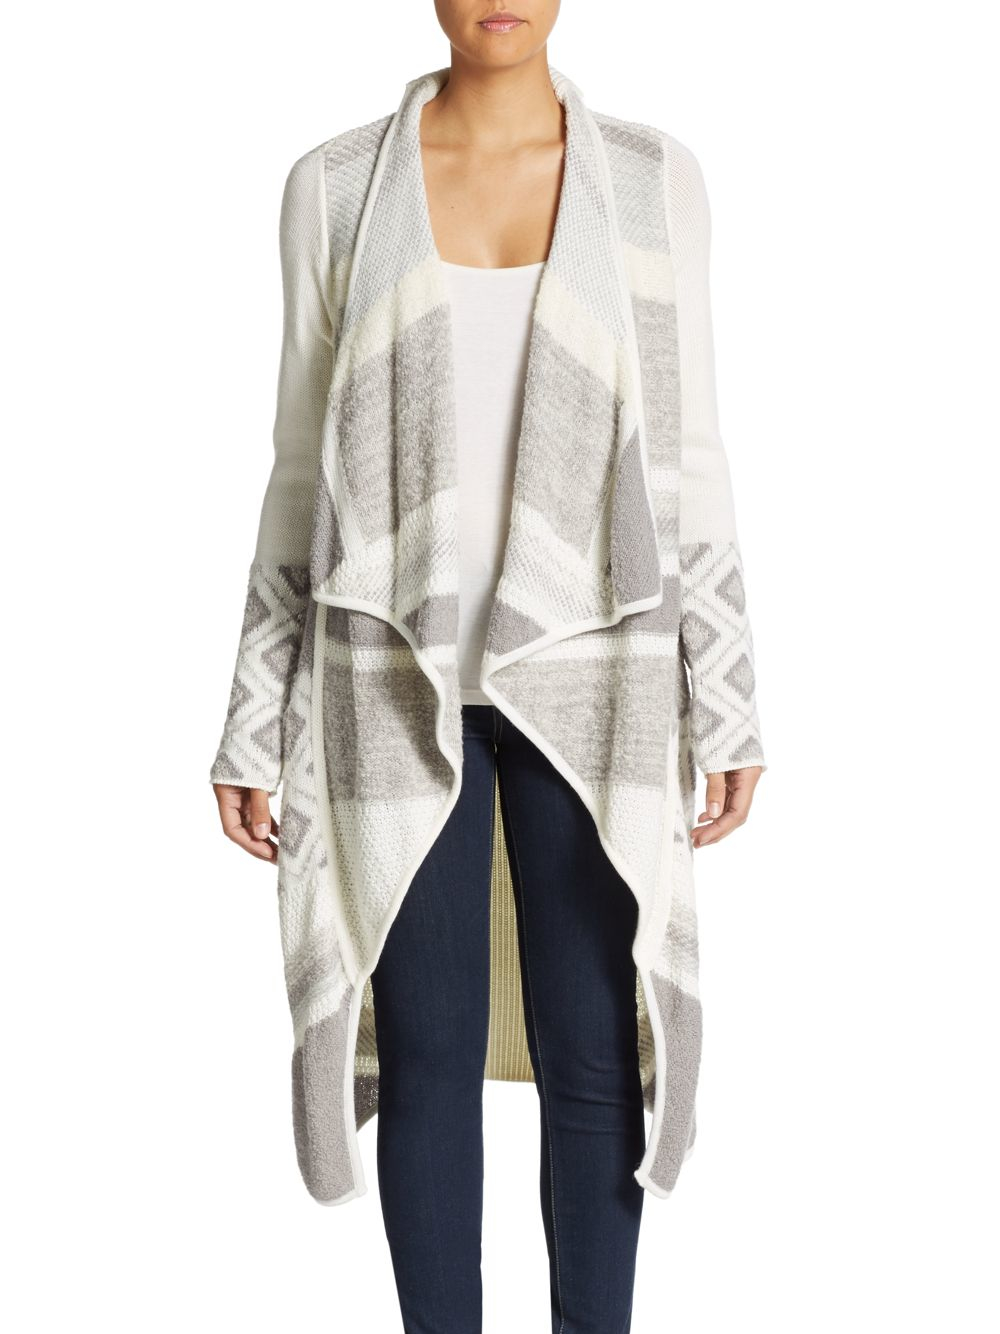 Vince Graphic Textured Sweater Coat in Natural | Lyst